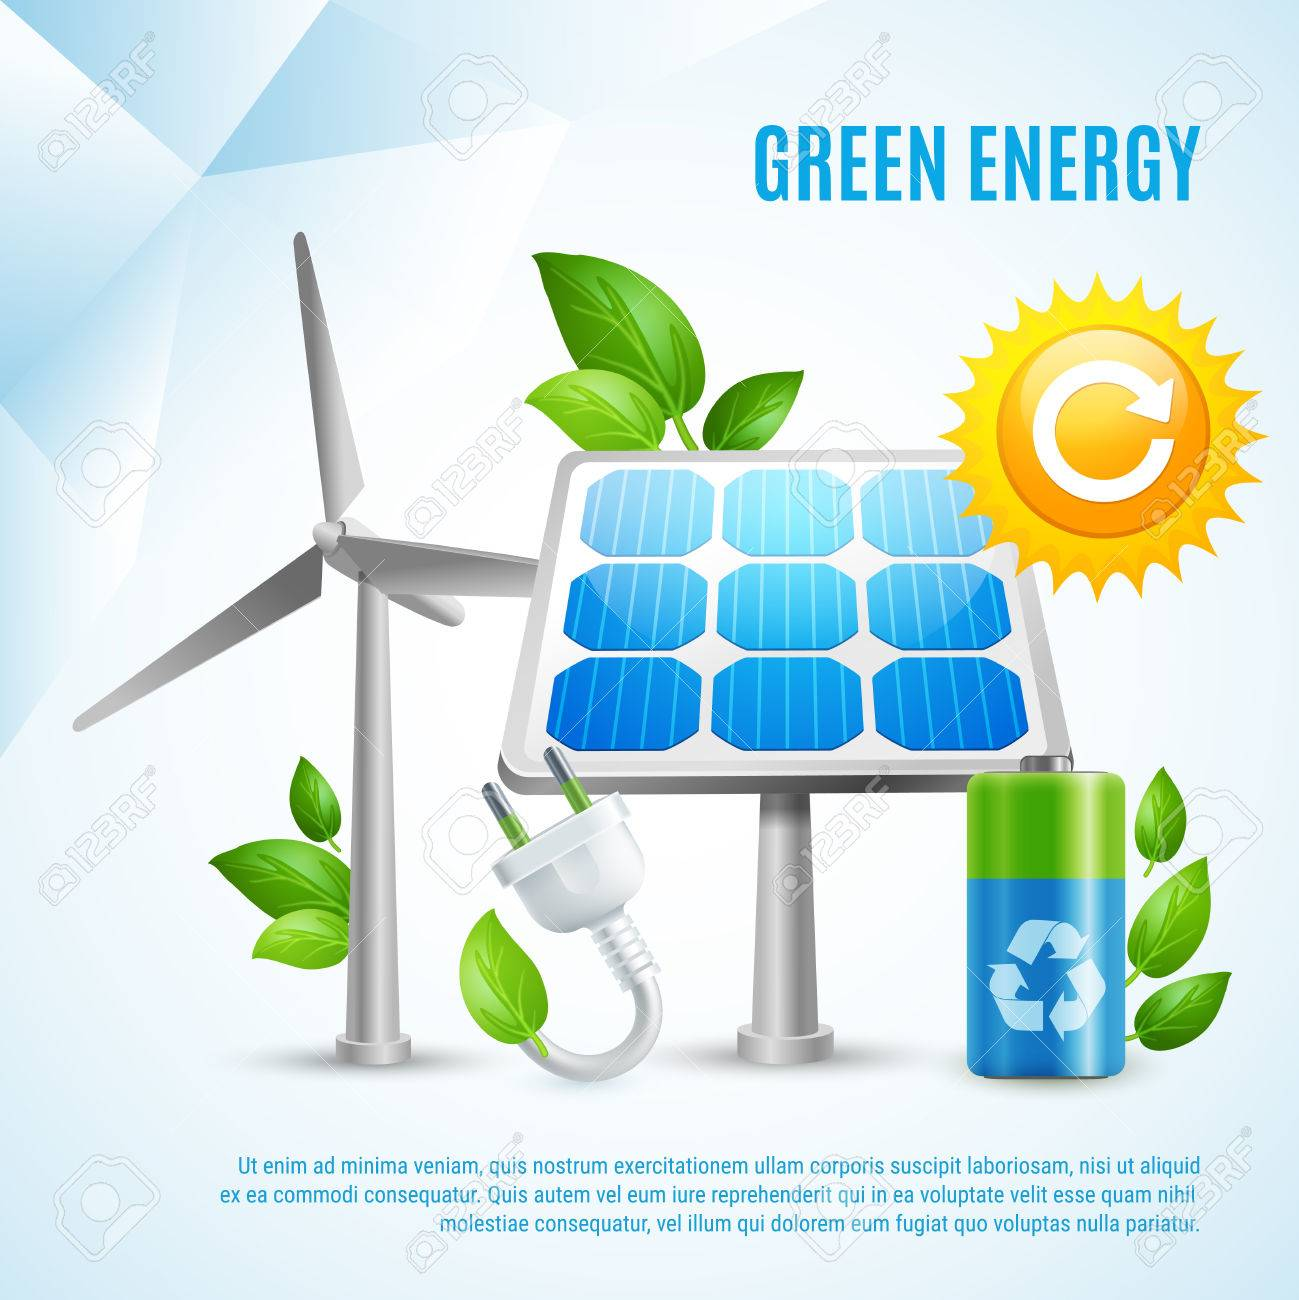 Green energy design concept with wind turbines solar panels green